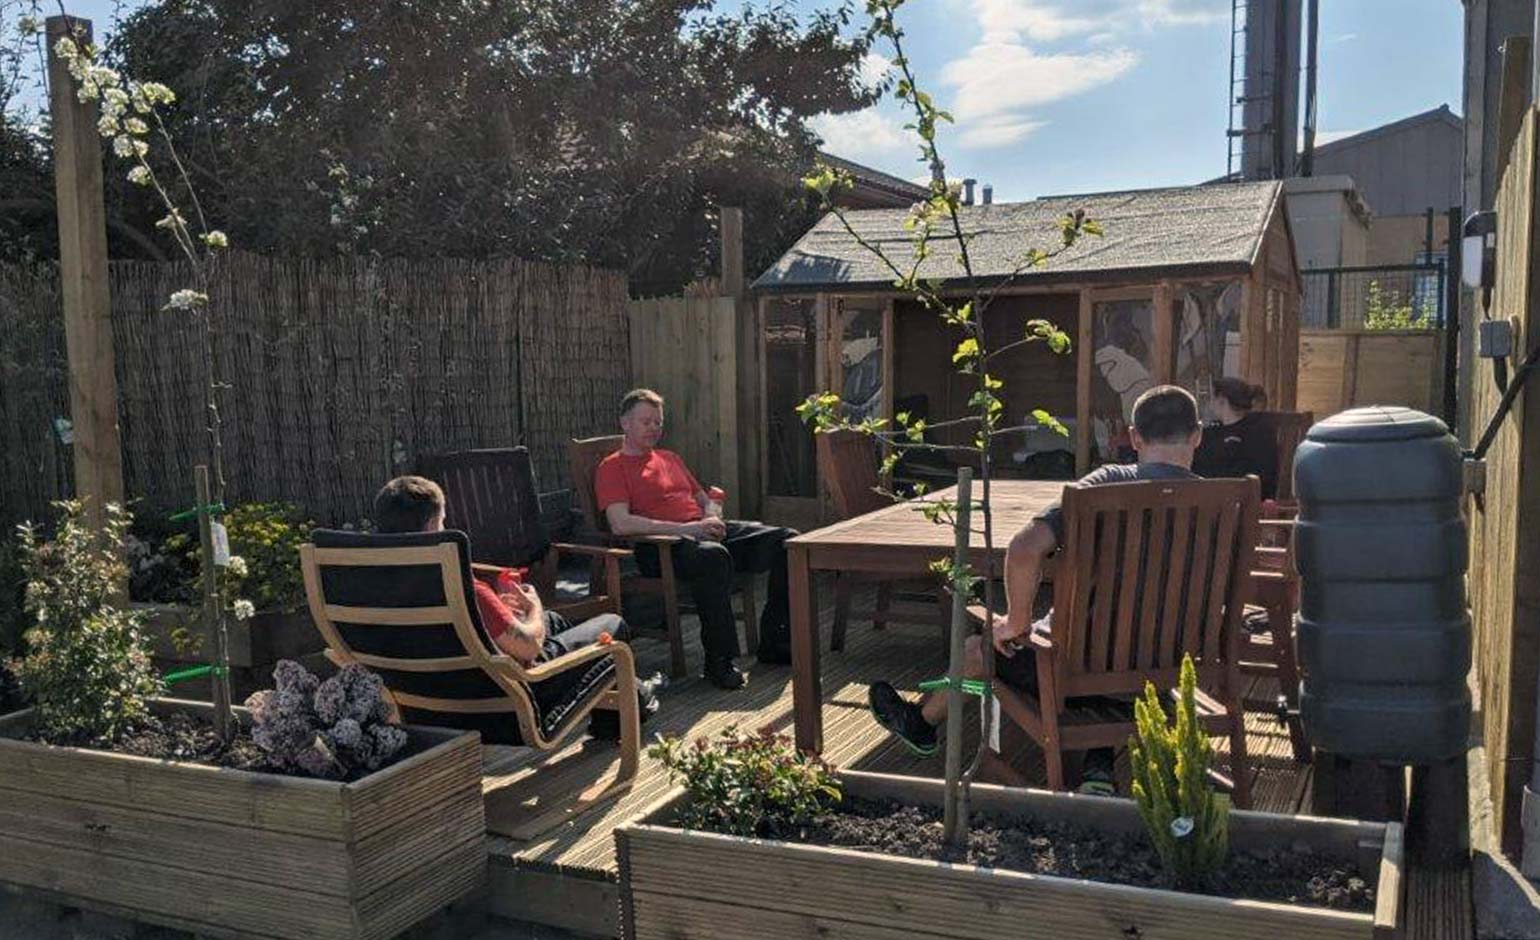 Avon Fire & Rescue Service creates wellbeing spaces to support their staff